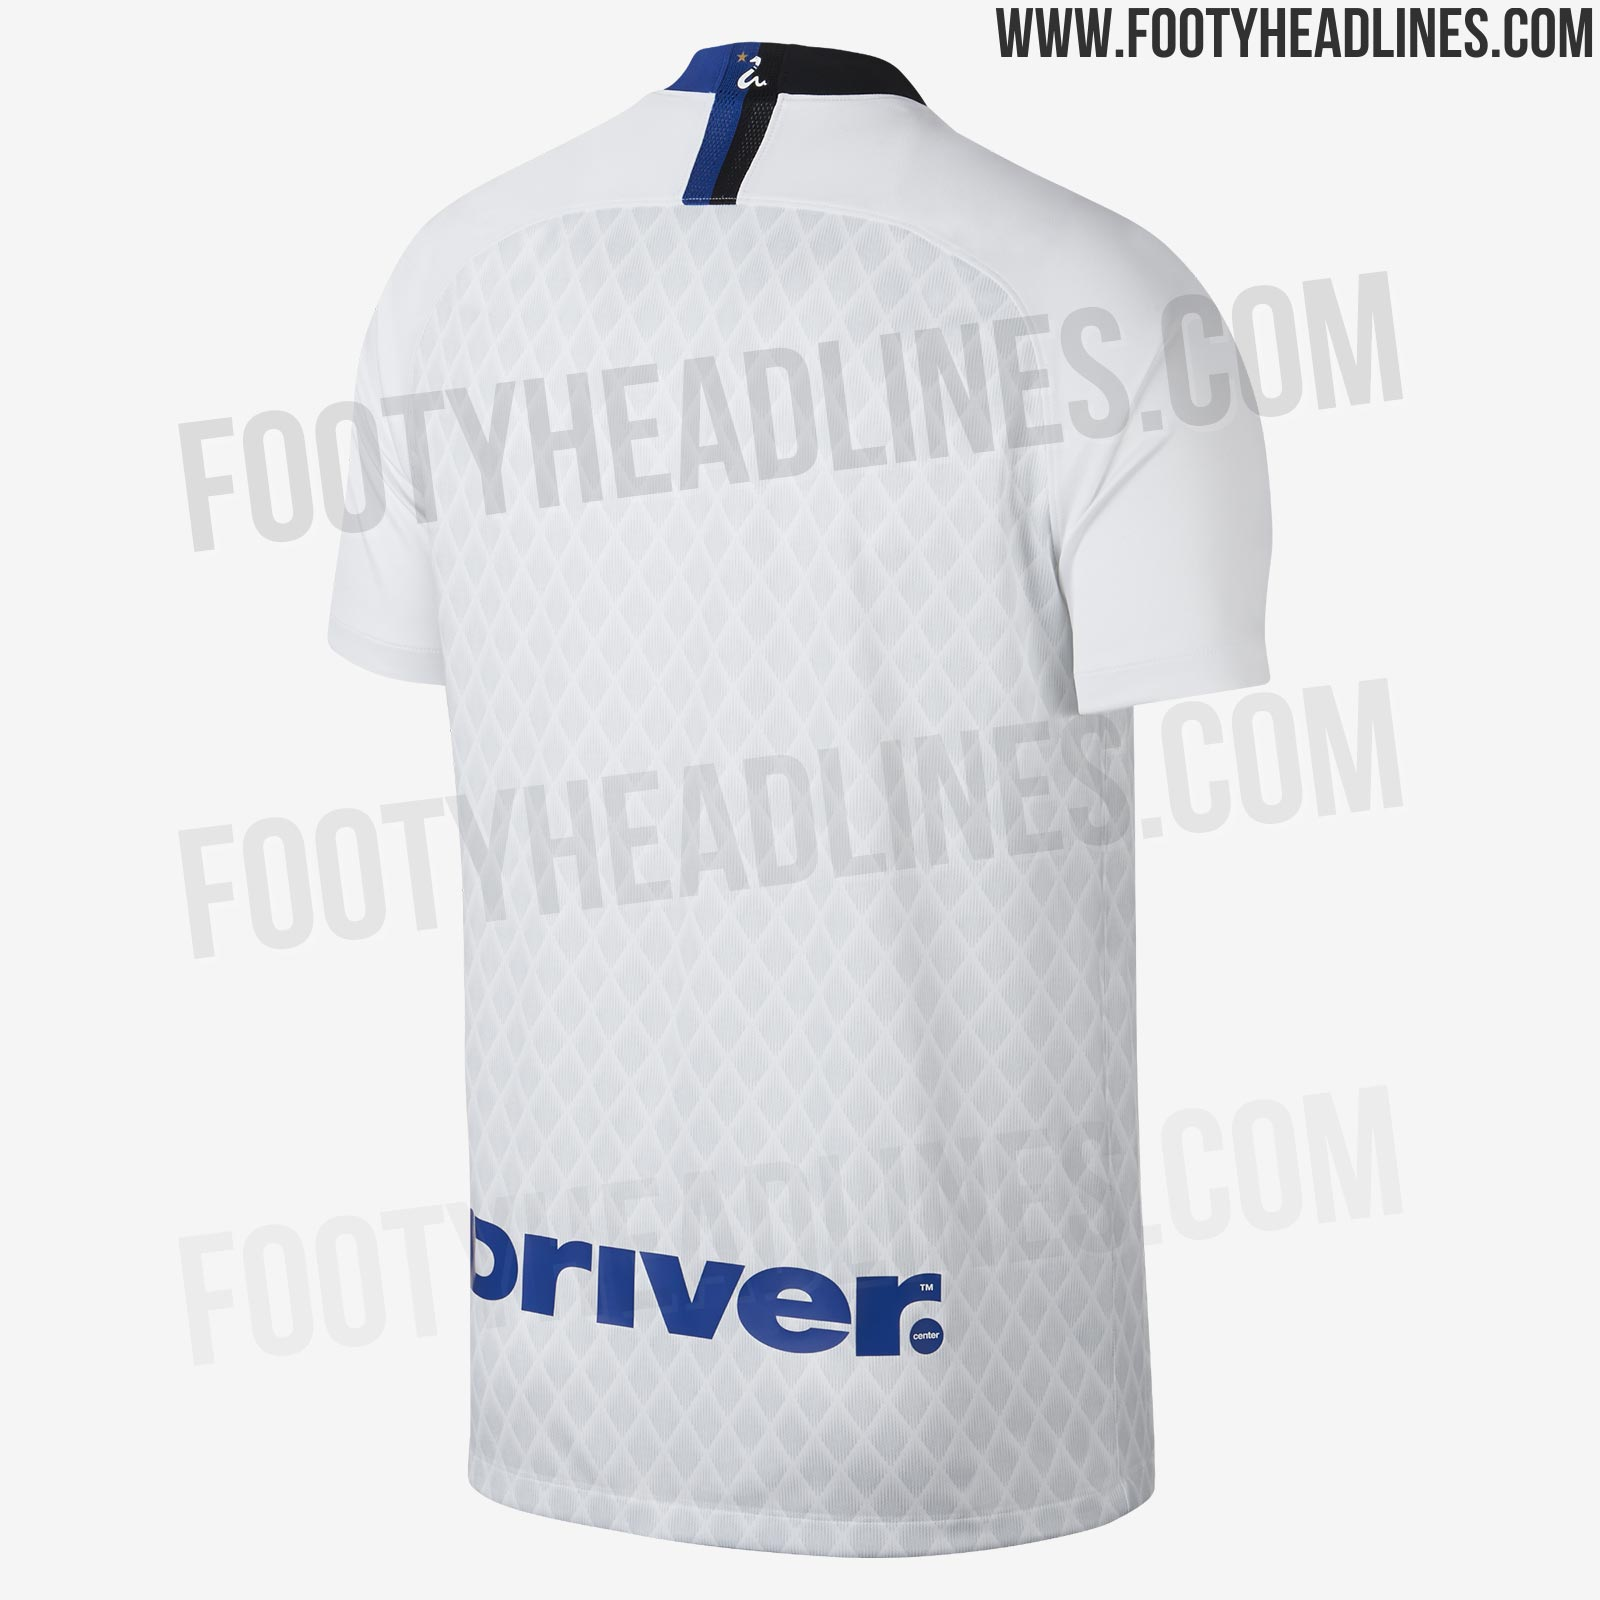 inter-18-19-away-kit-3.jpg